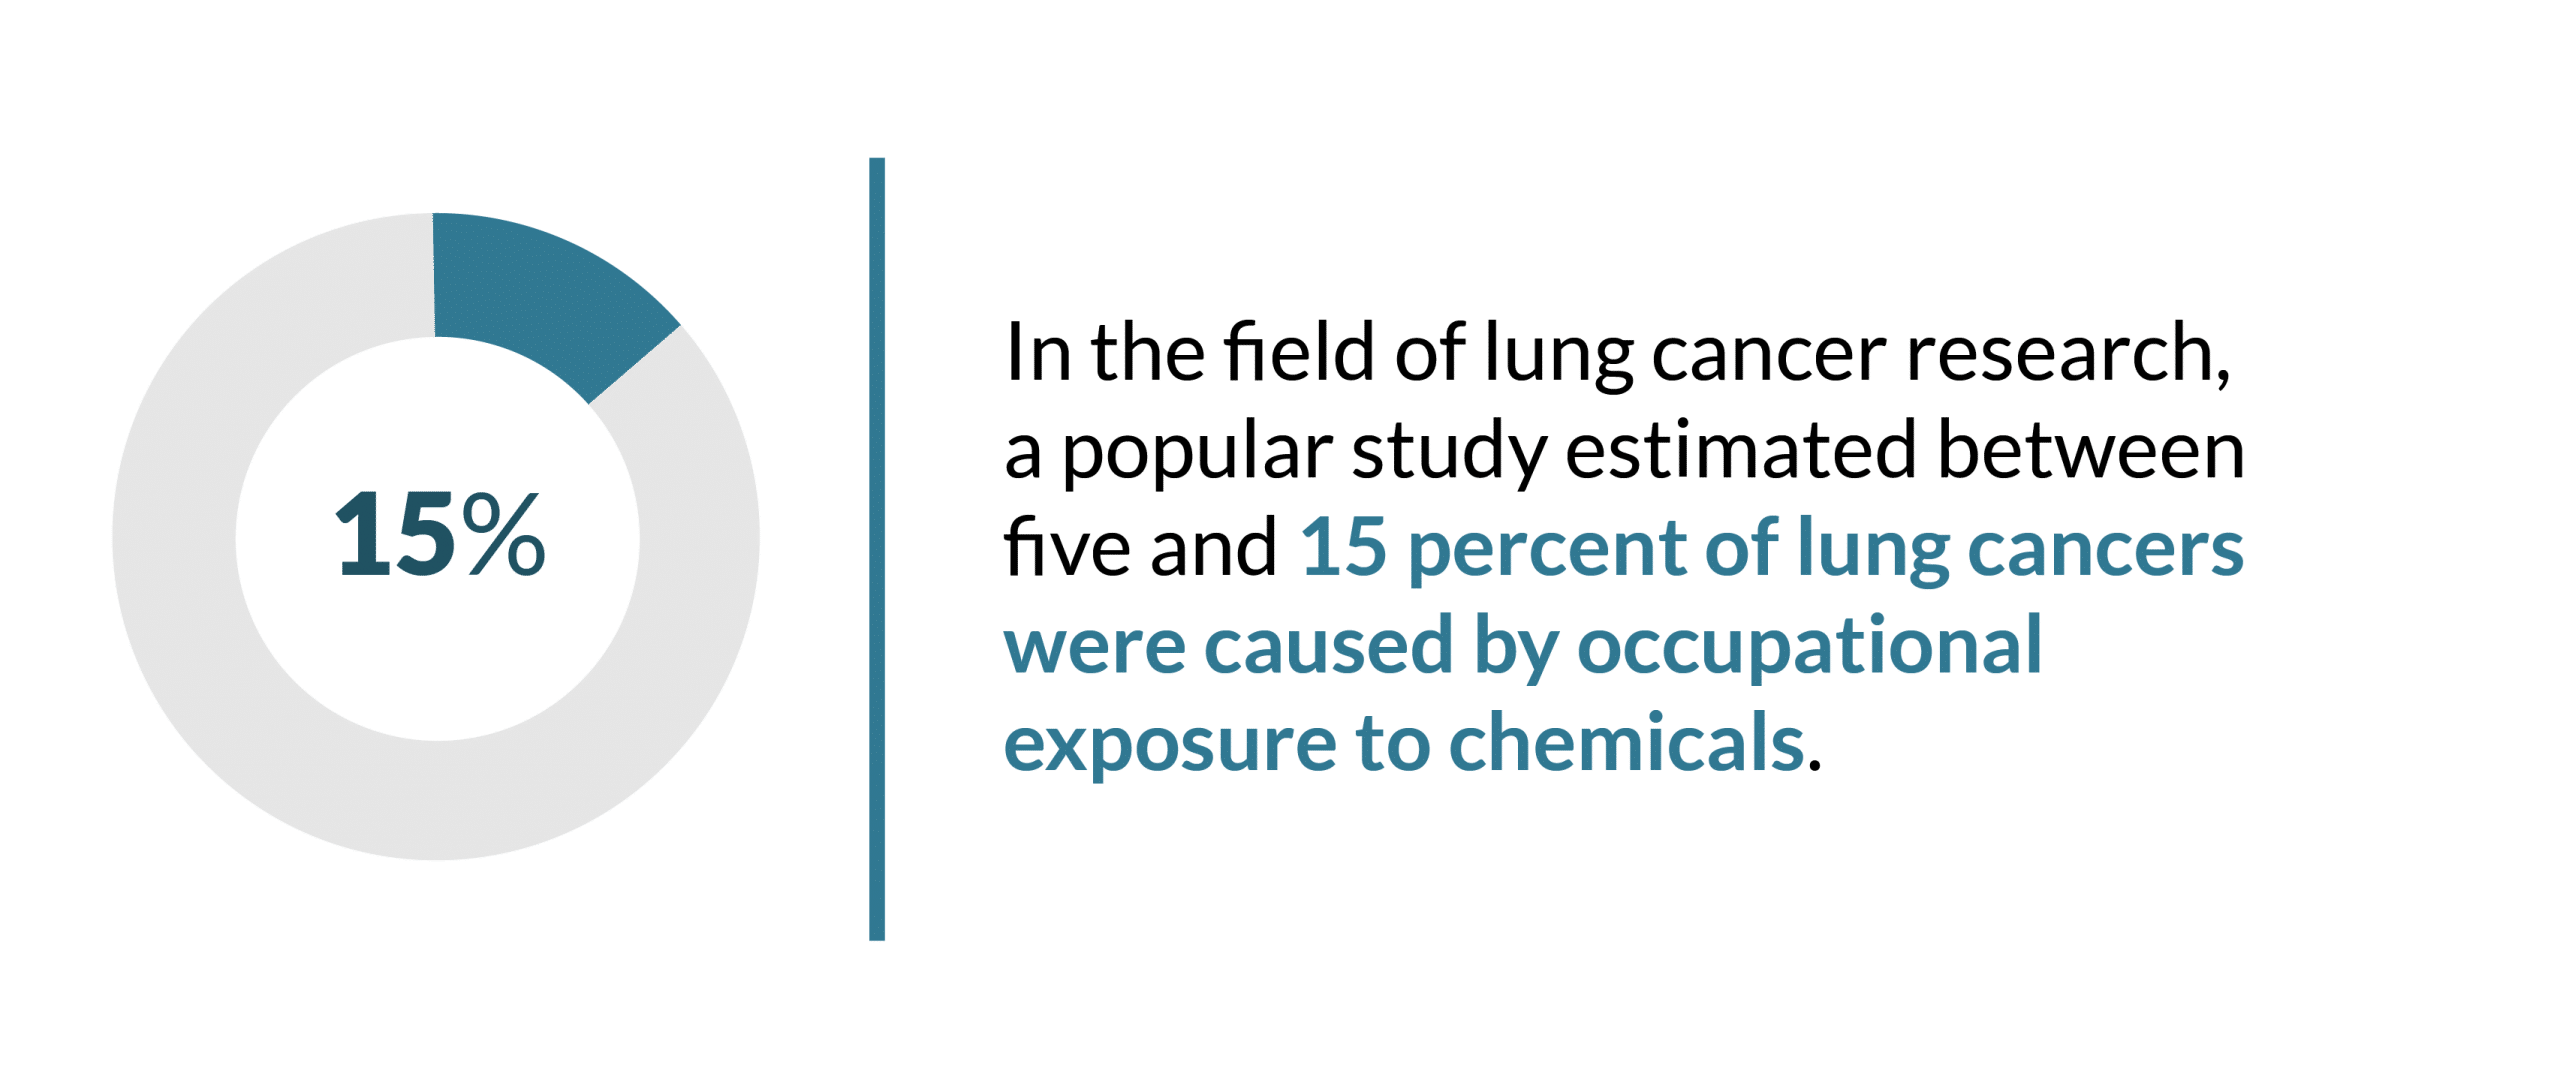 This is a statistic explaining that 15% of lung cancers were caused by occupational exposure to chemicals.